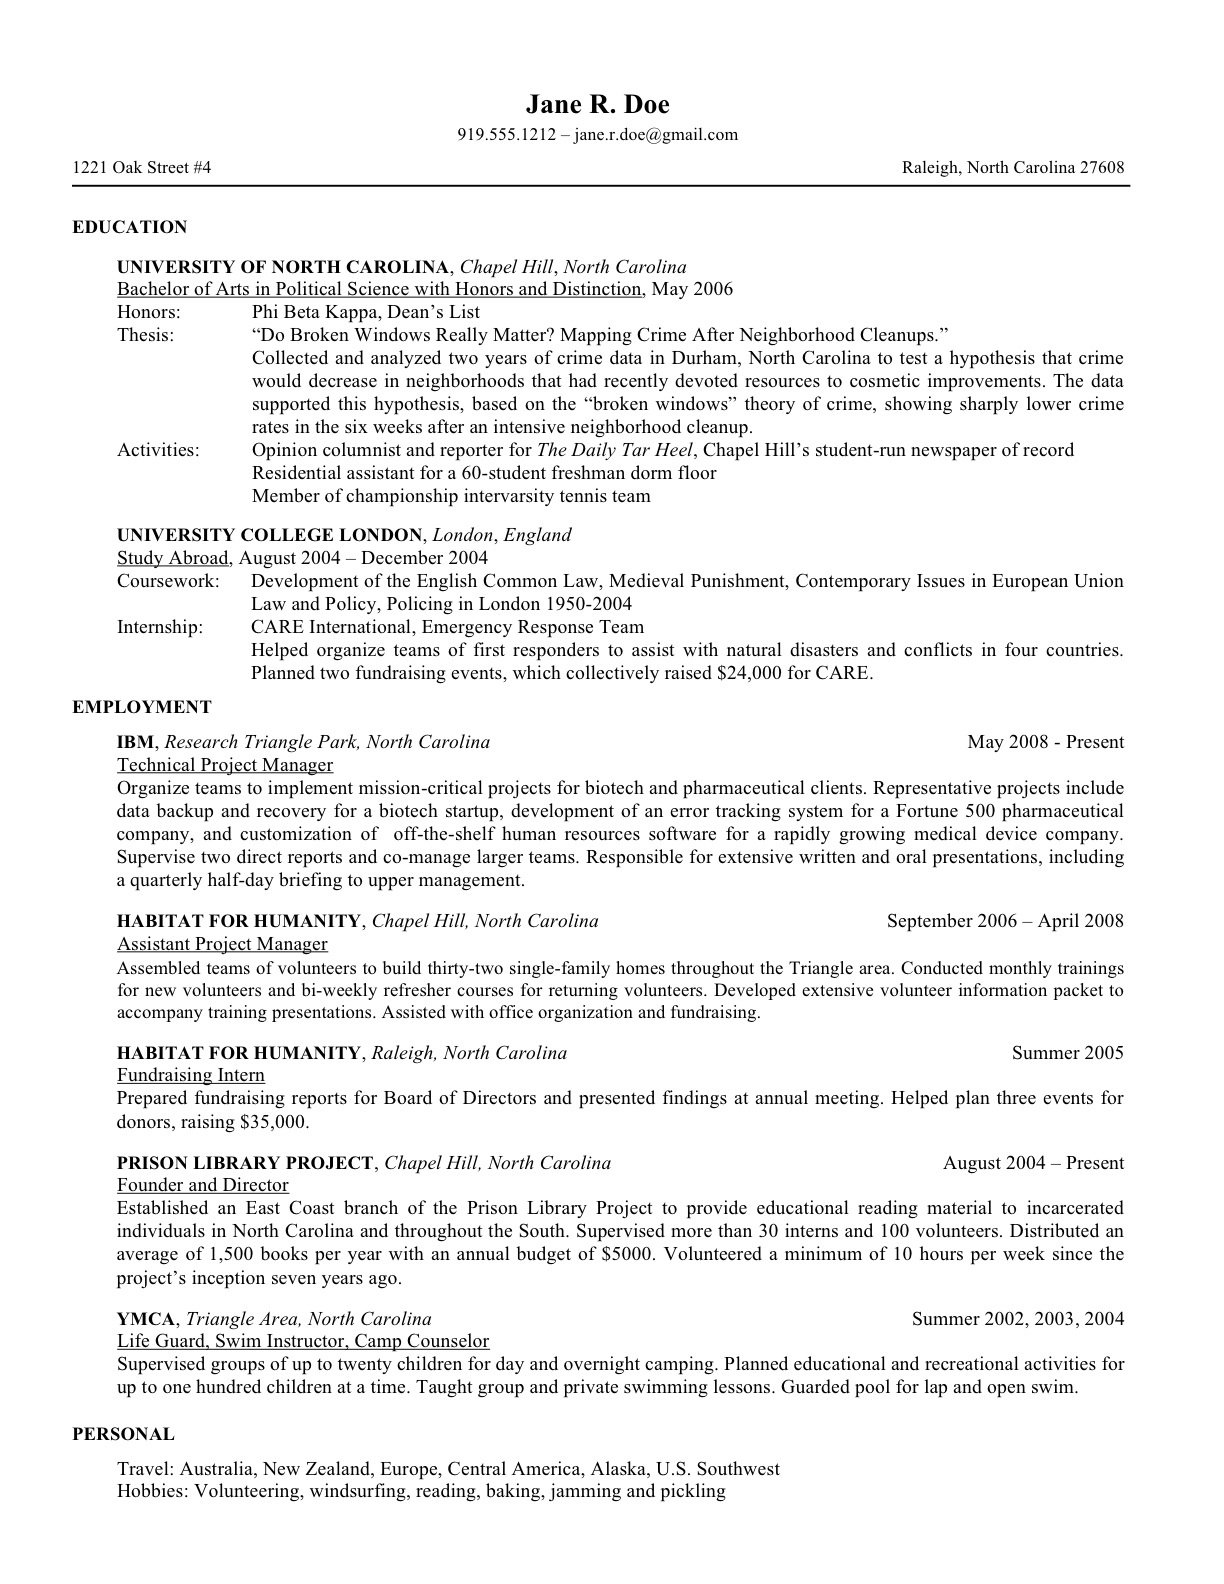 law school resume templates prepping your for of university at listing education writing Resume Resume Listing Education